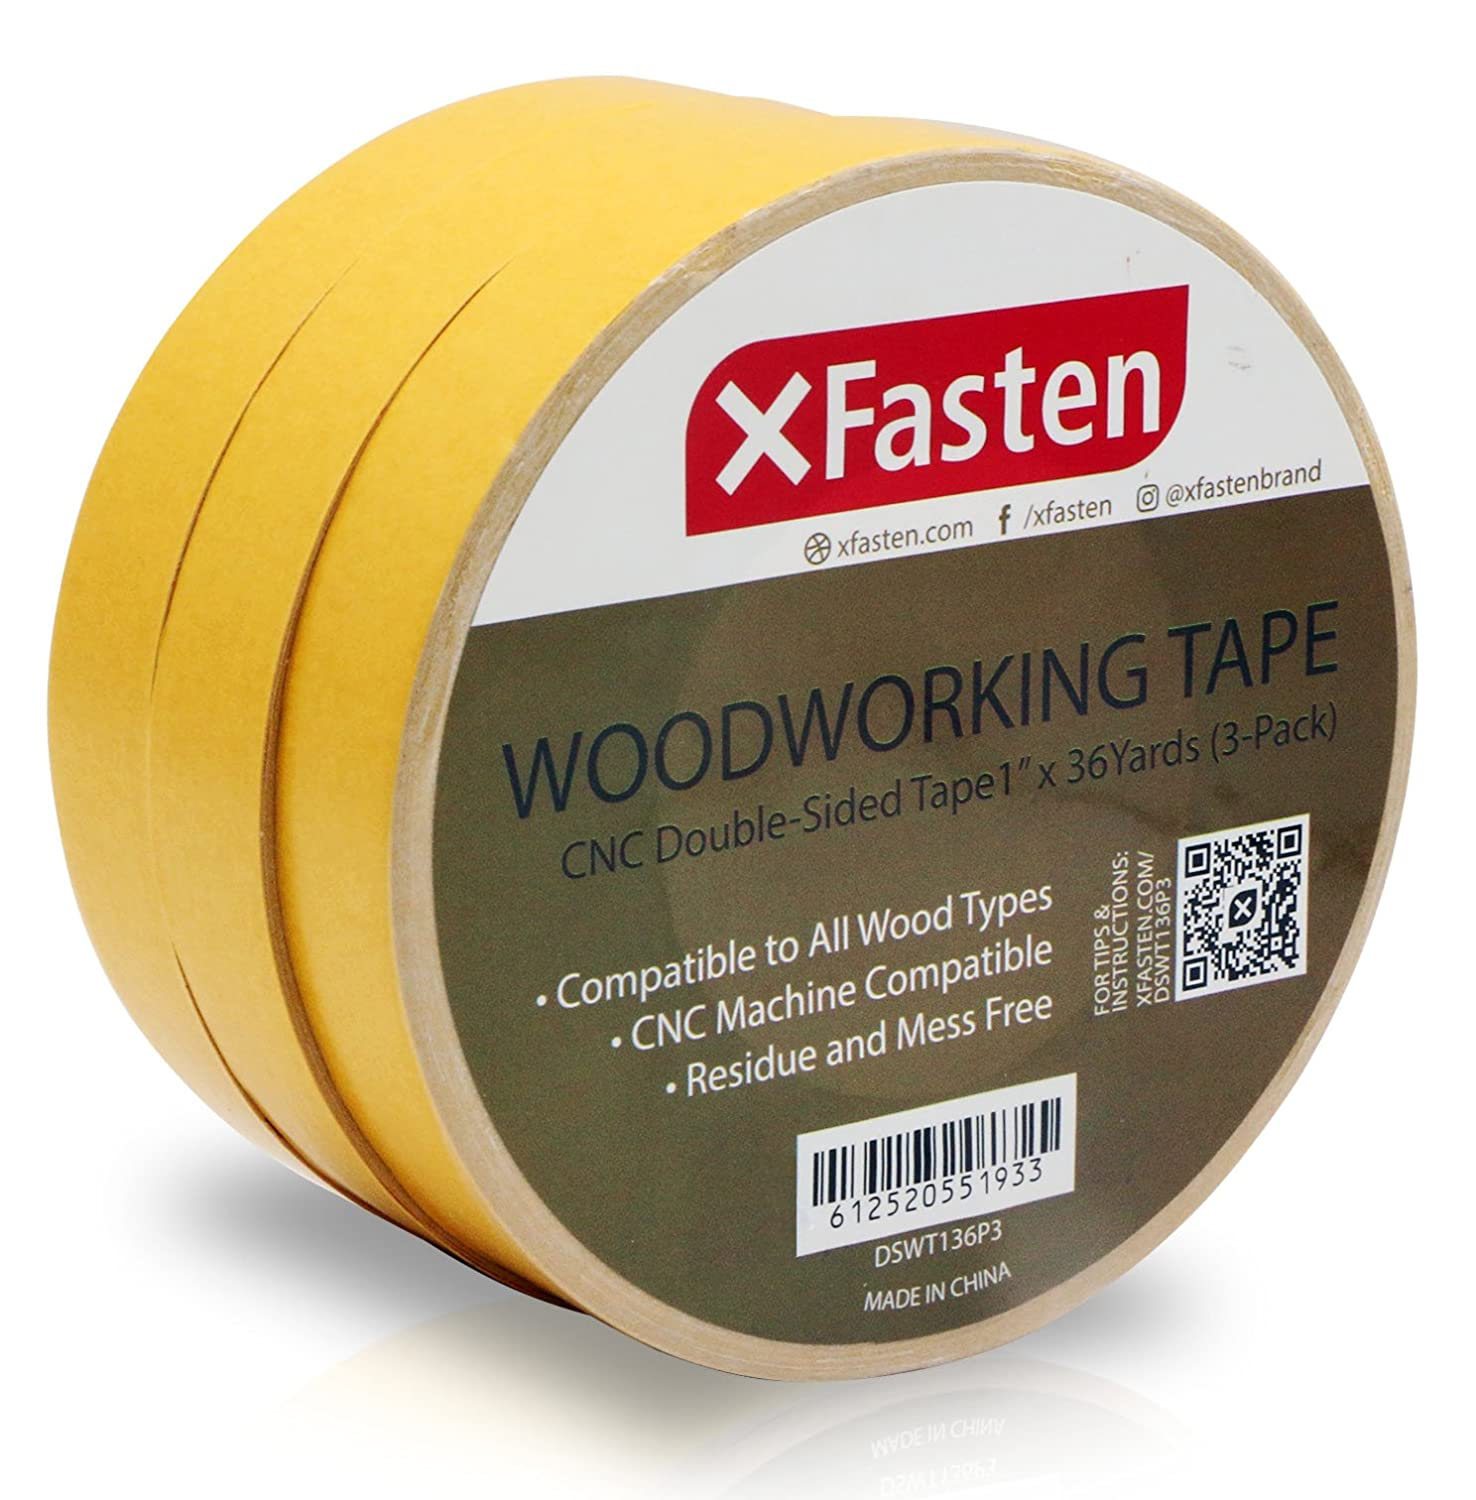 XFasten Double Sided Woodworking Tape, 1-Inch by 36-Yards, 3-Pack - Double Face Woodworker Turner's Tape for Wood Template, Removable & Residue Free